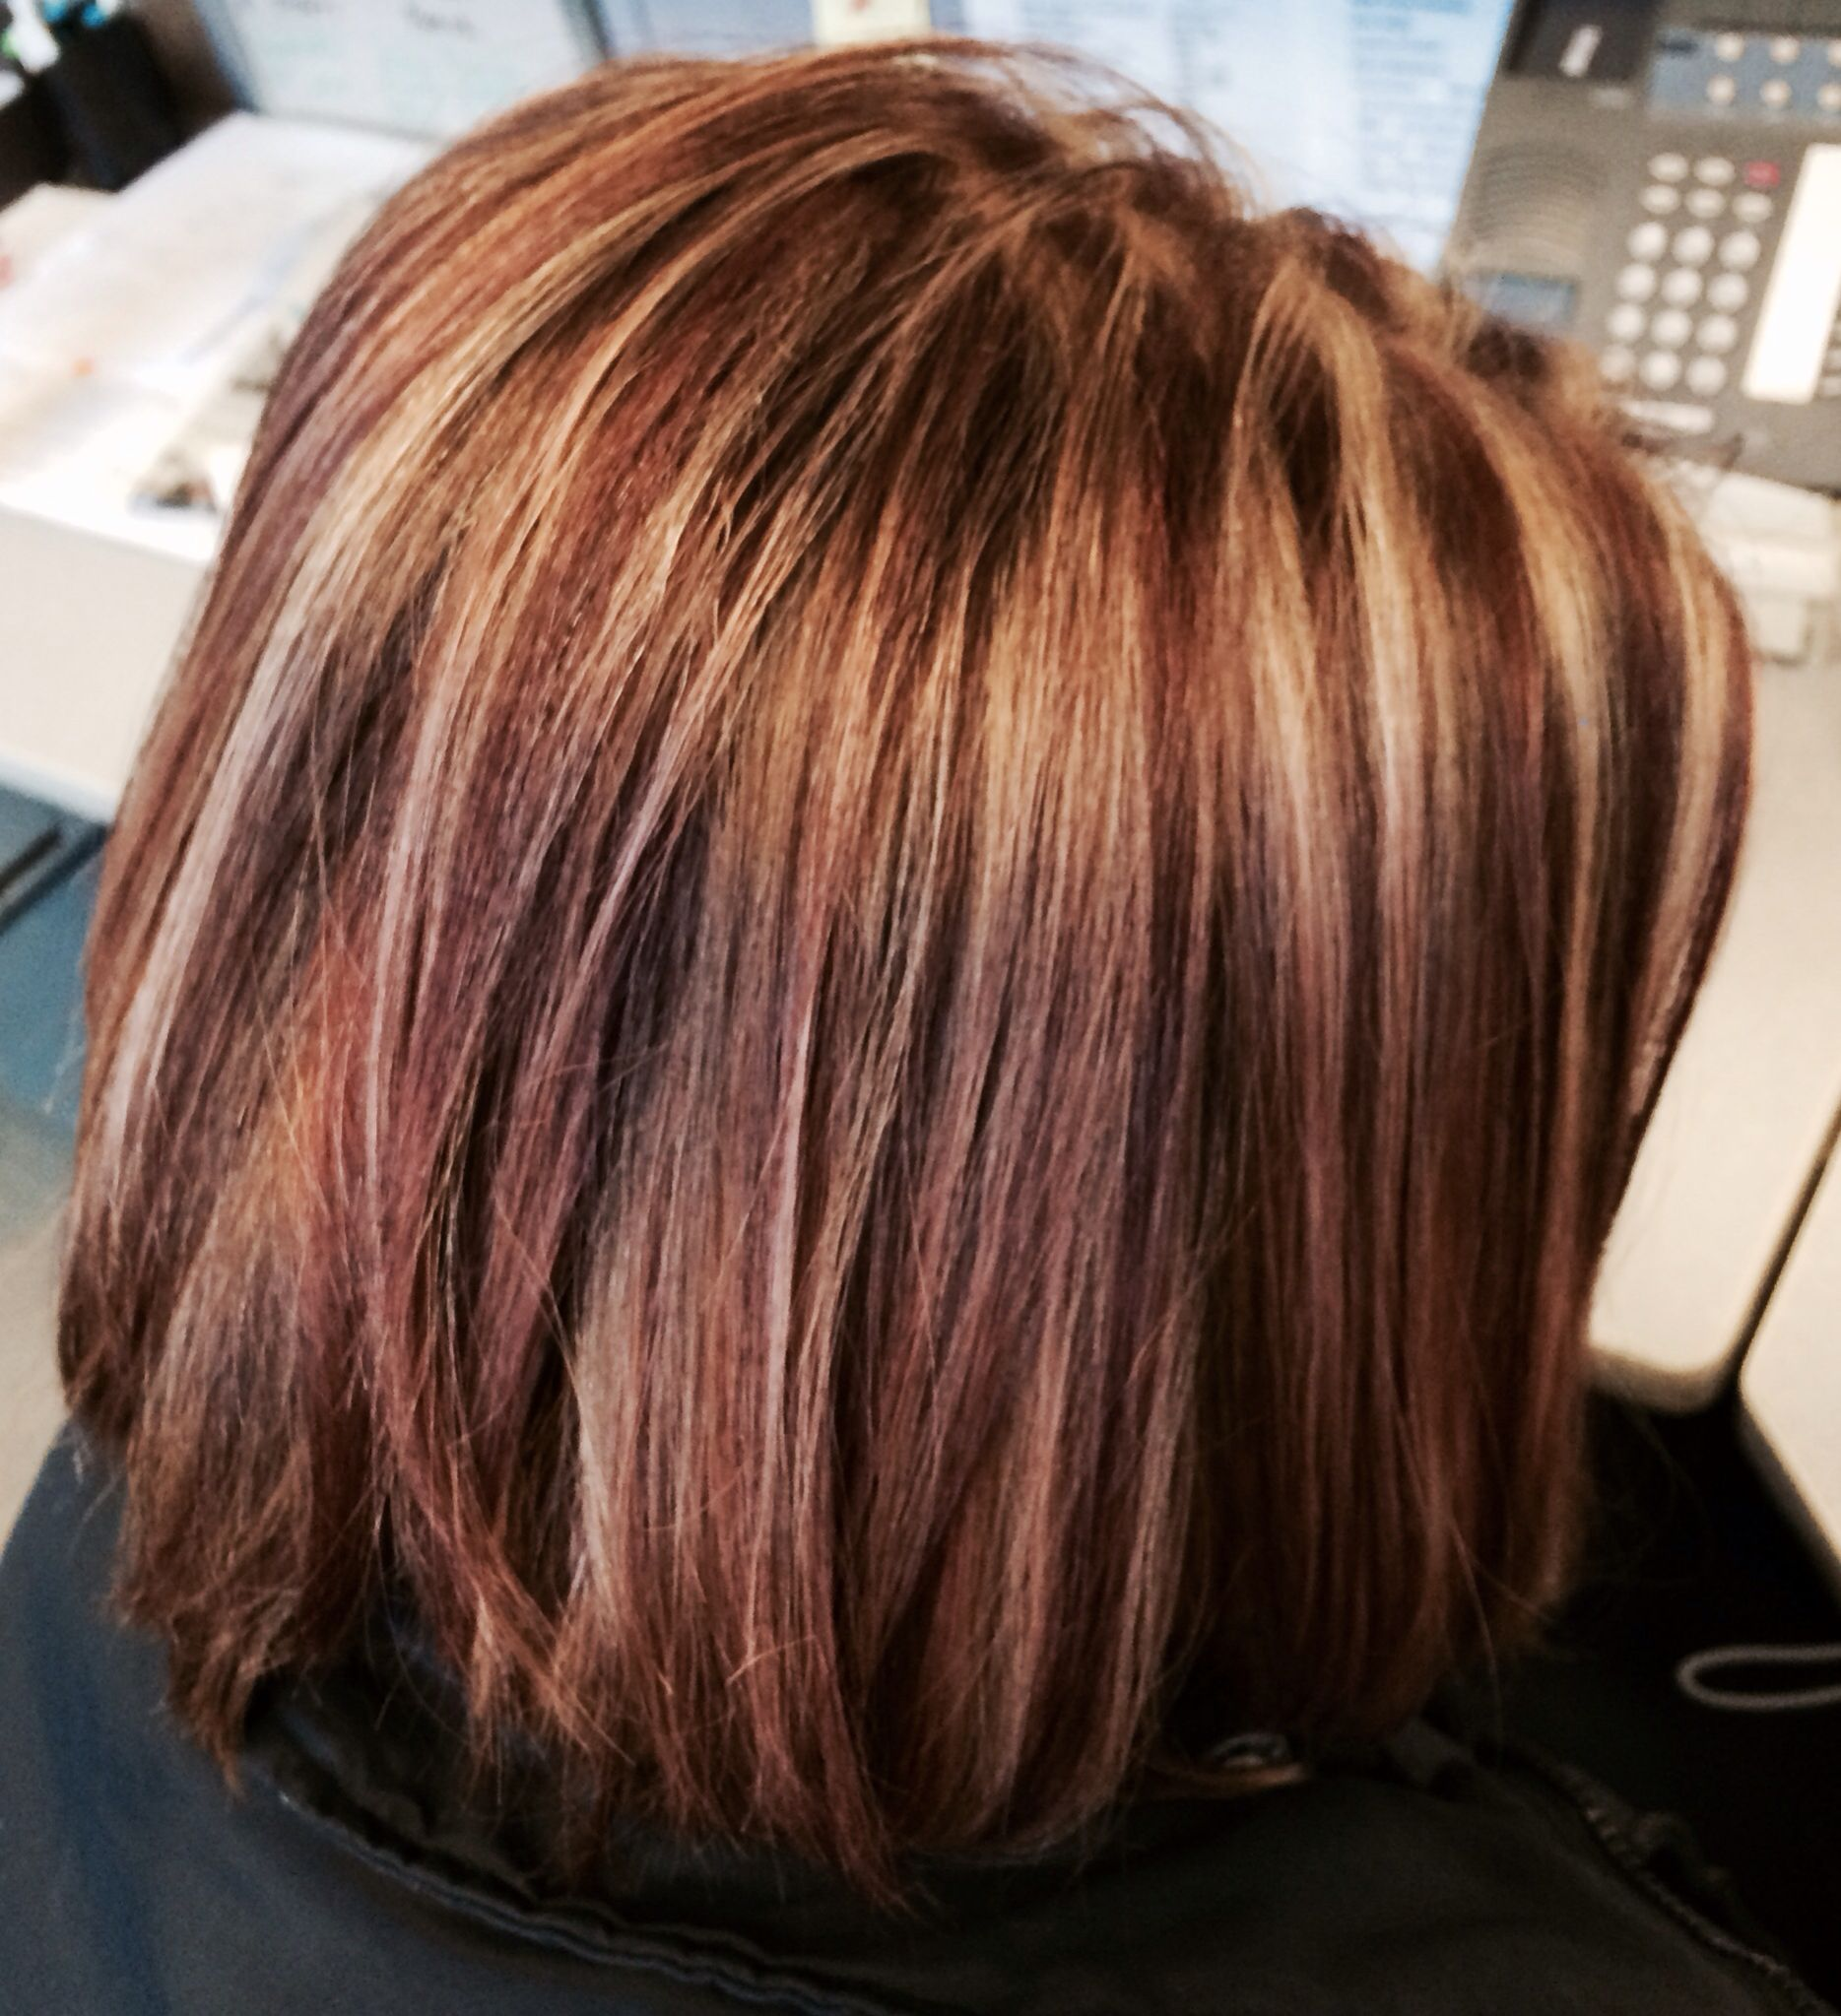 Brown Hair With Caramel Highlights And Red Highlights Burgundy And